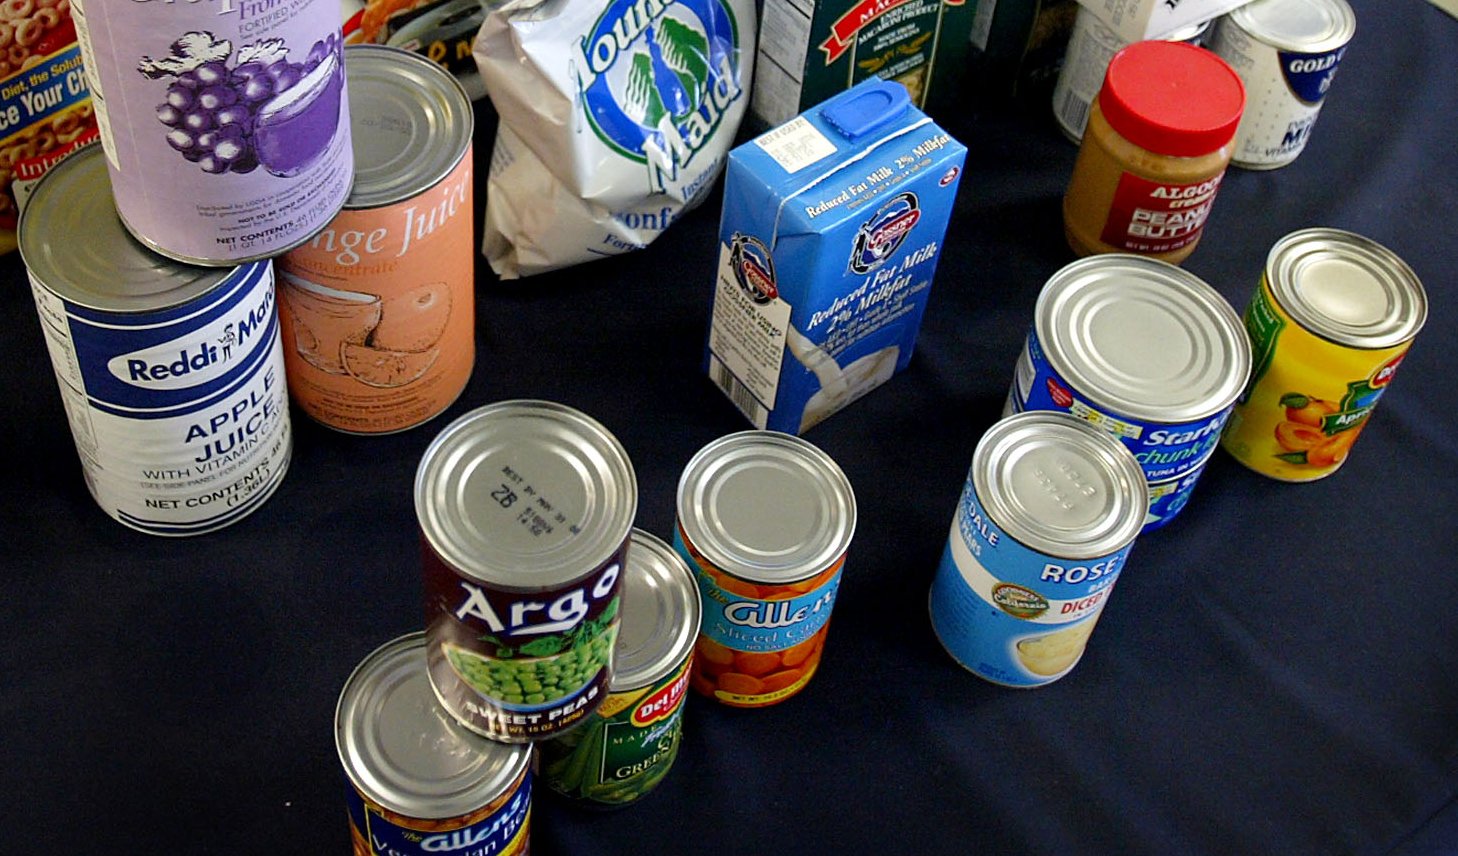 Food stamps absorb shutdown impact | The Spokesman-Review